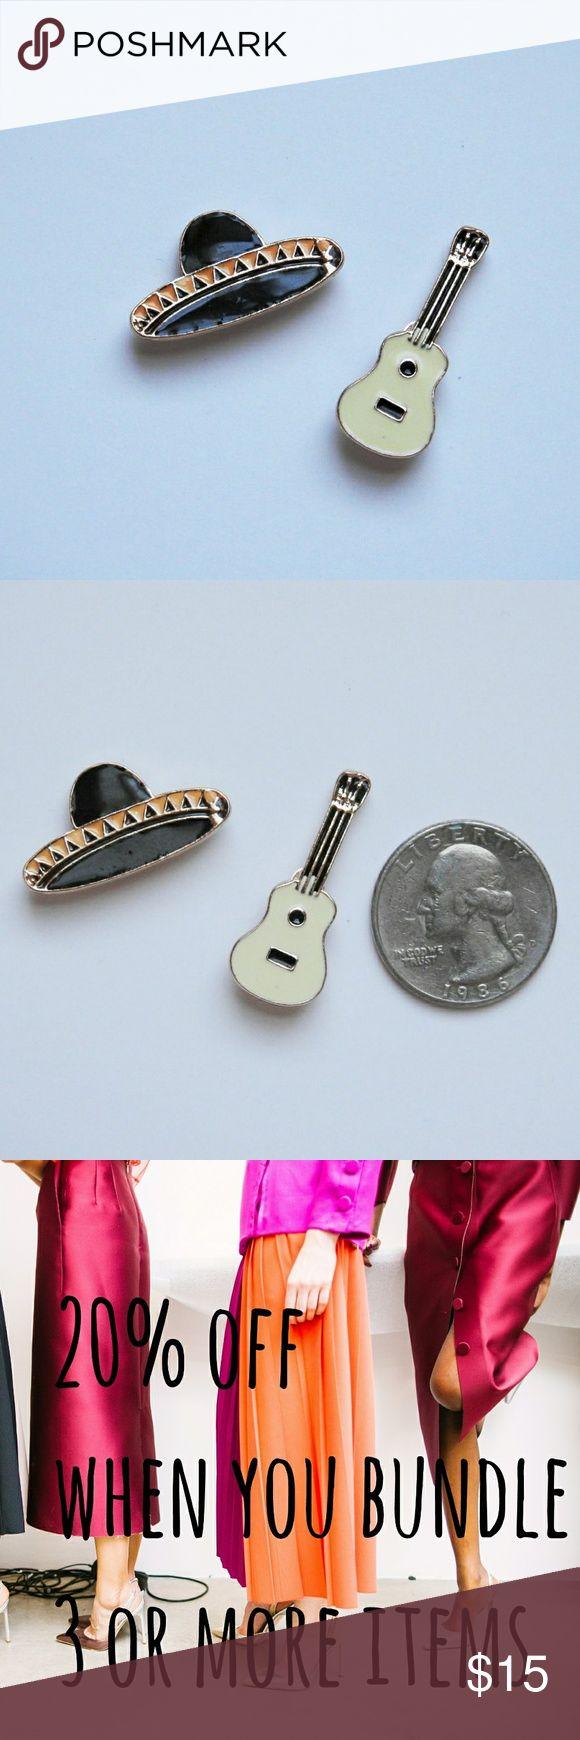 Enamel Pin set: Sombrero and Guitar Cute enamel pins  Set includes: Sombrero  Guitar  Use to decorate backpacks, purses and jean jackets. Accessories